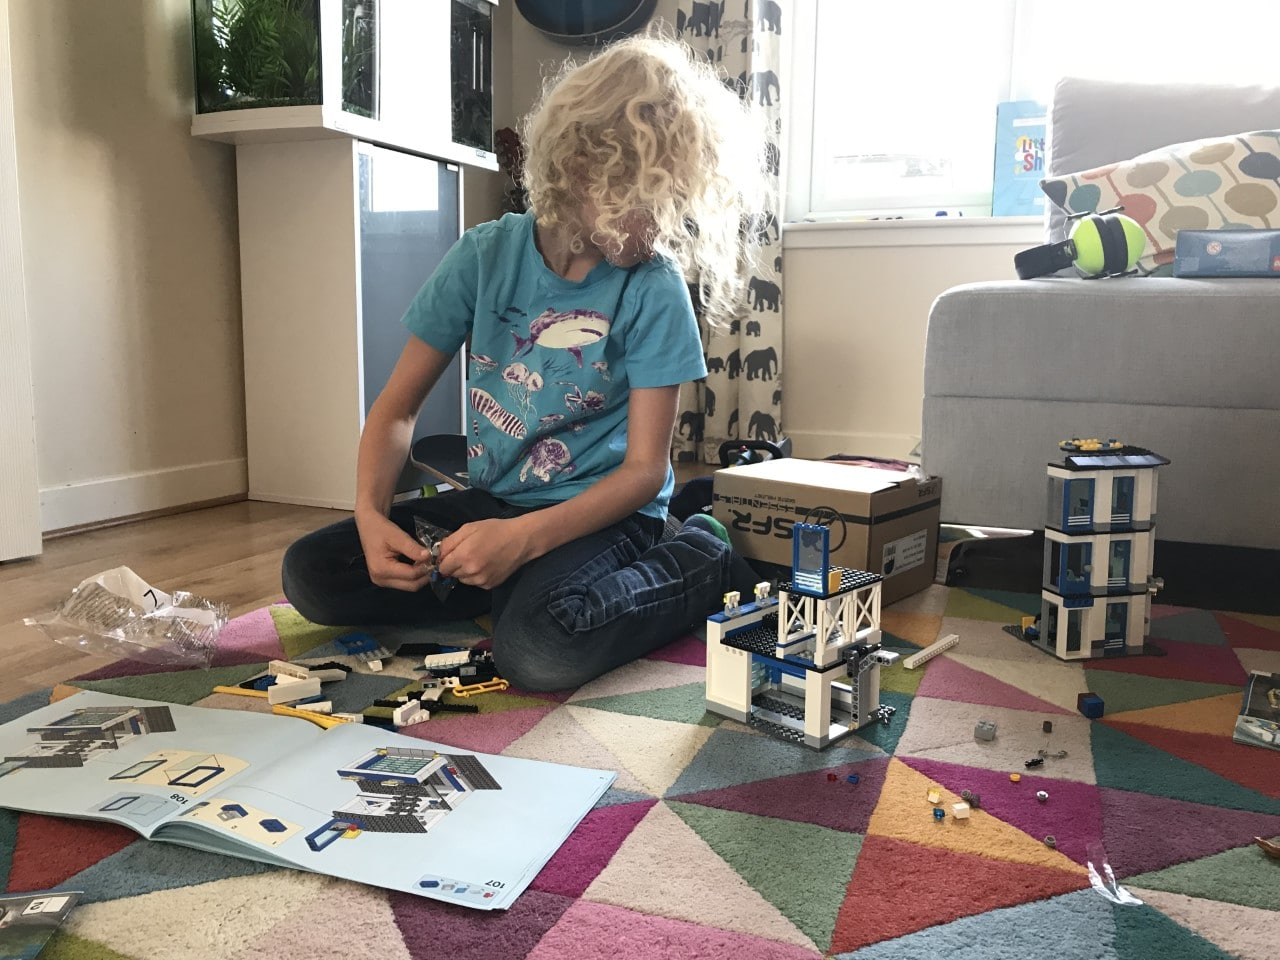 child building lego